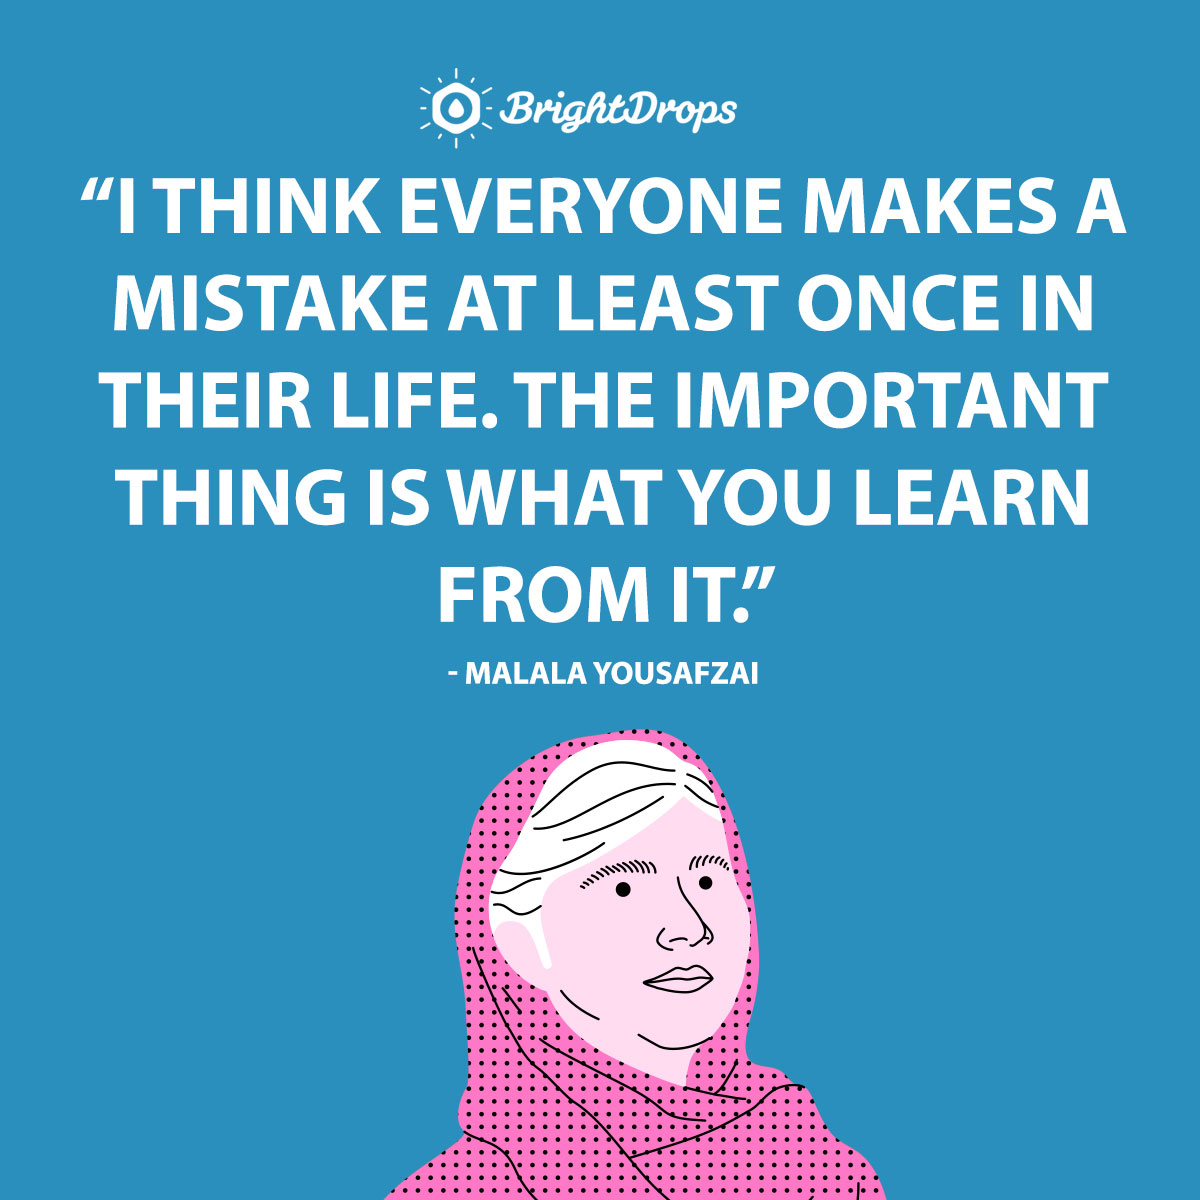 I think everyone makes a mistake at least once in their life. The important thing is what you learn from it. - Malala Yousafzai